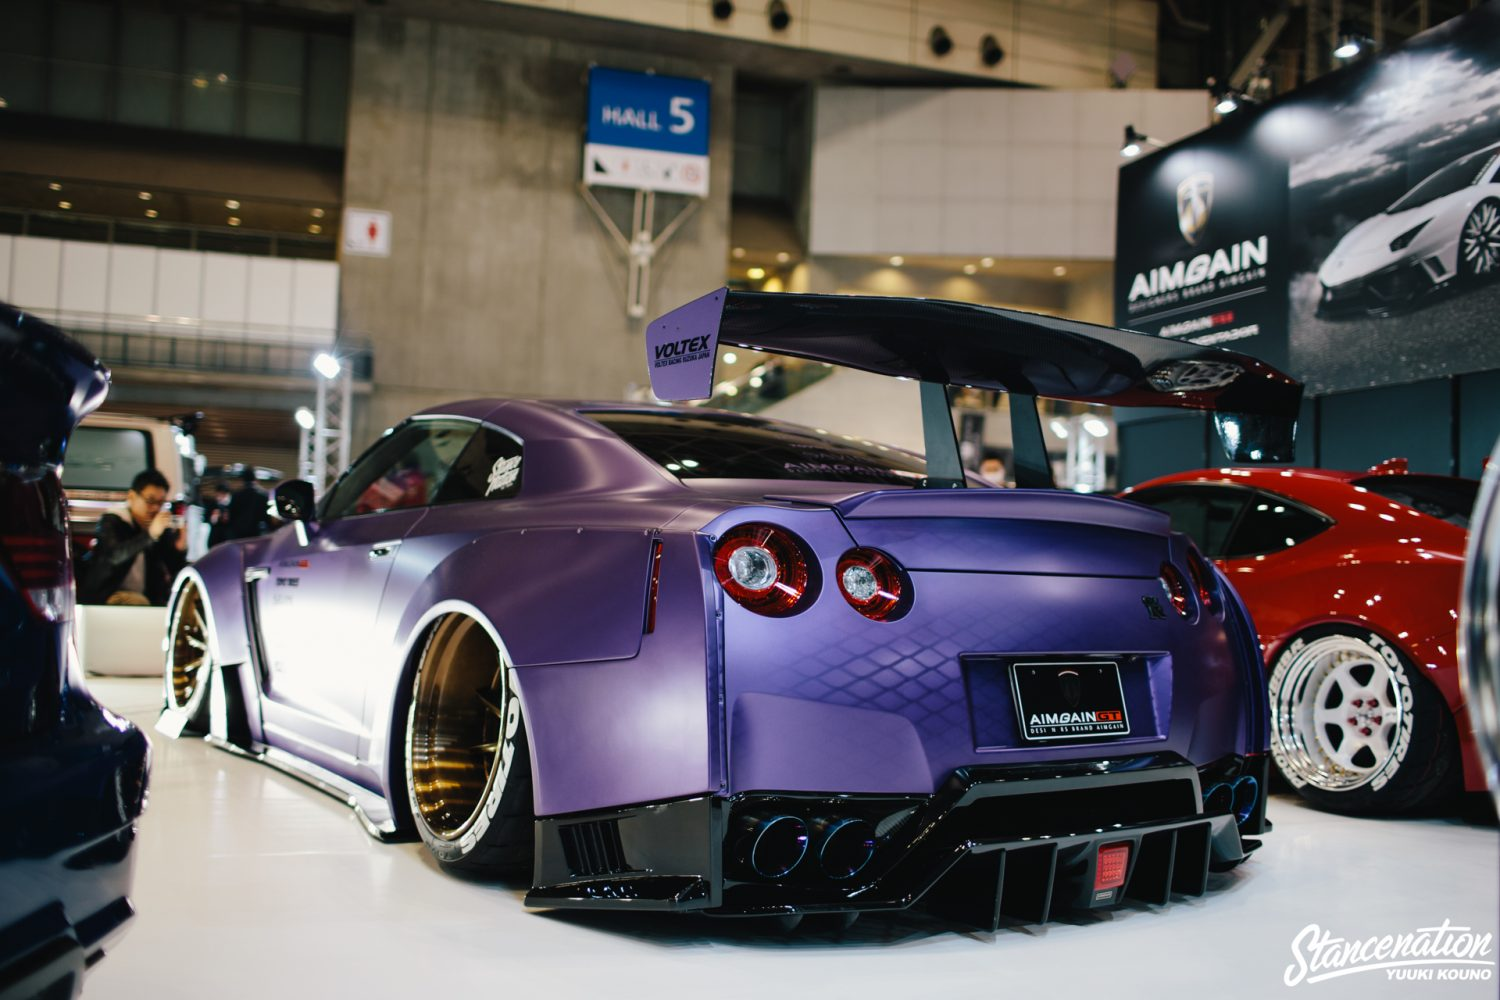 Tokyo auto salon 2017 photo coverage part 1 for Photo salon